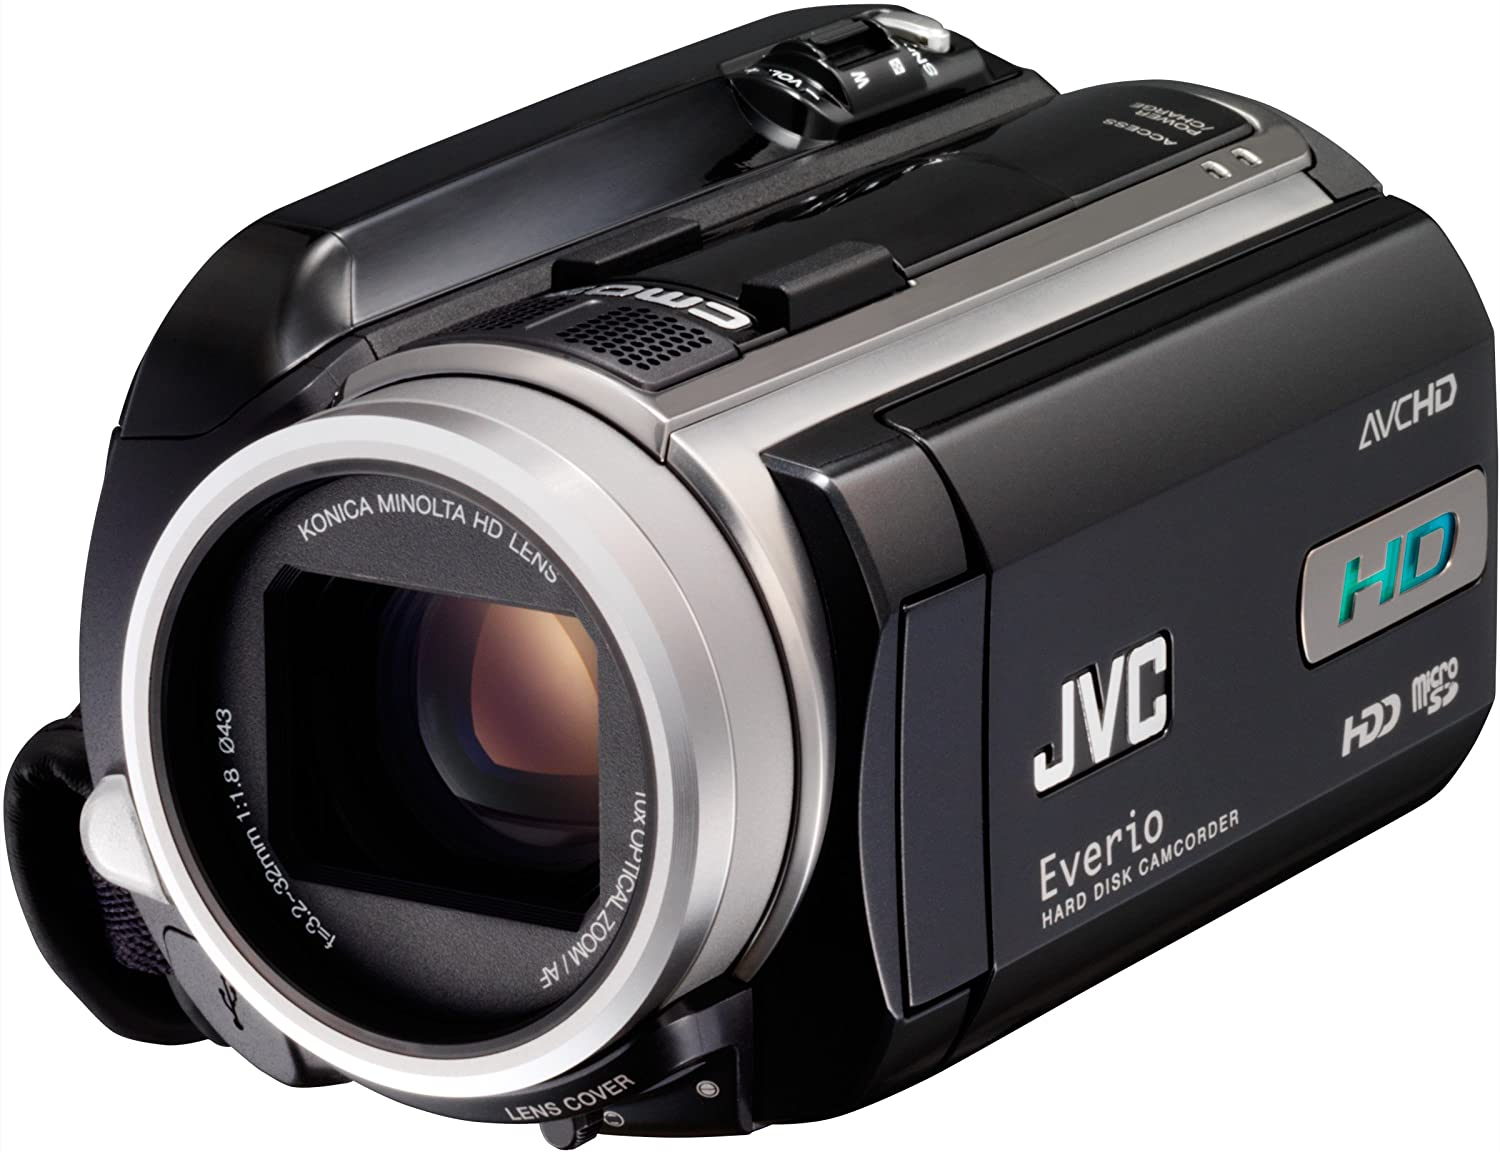 Amazon.com : JVC Everio GZ-HD10 AVCHD High Definition Camcorder w/10x  Optical Zoom (Discontinued by Manufacturer) : Video Camera : Camera & Photo